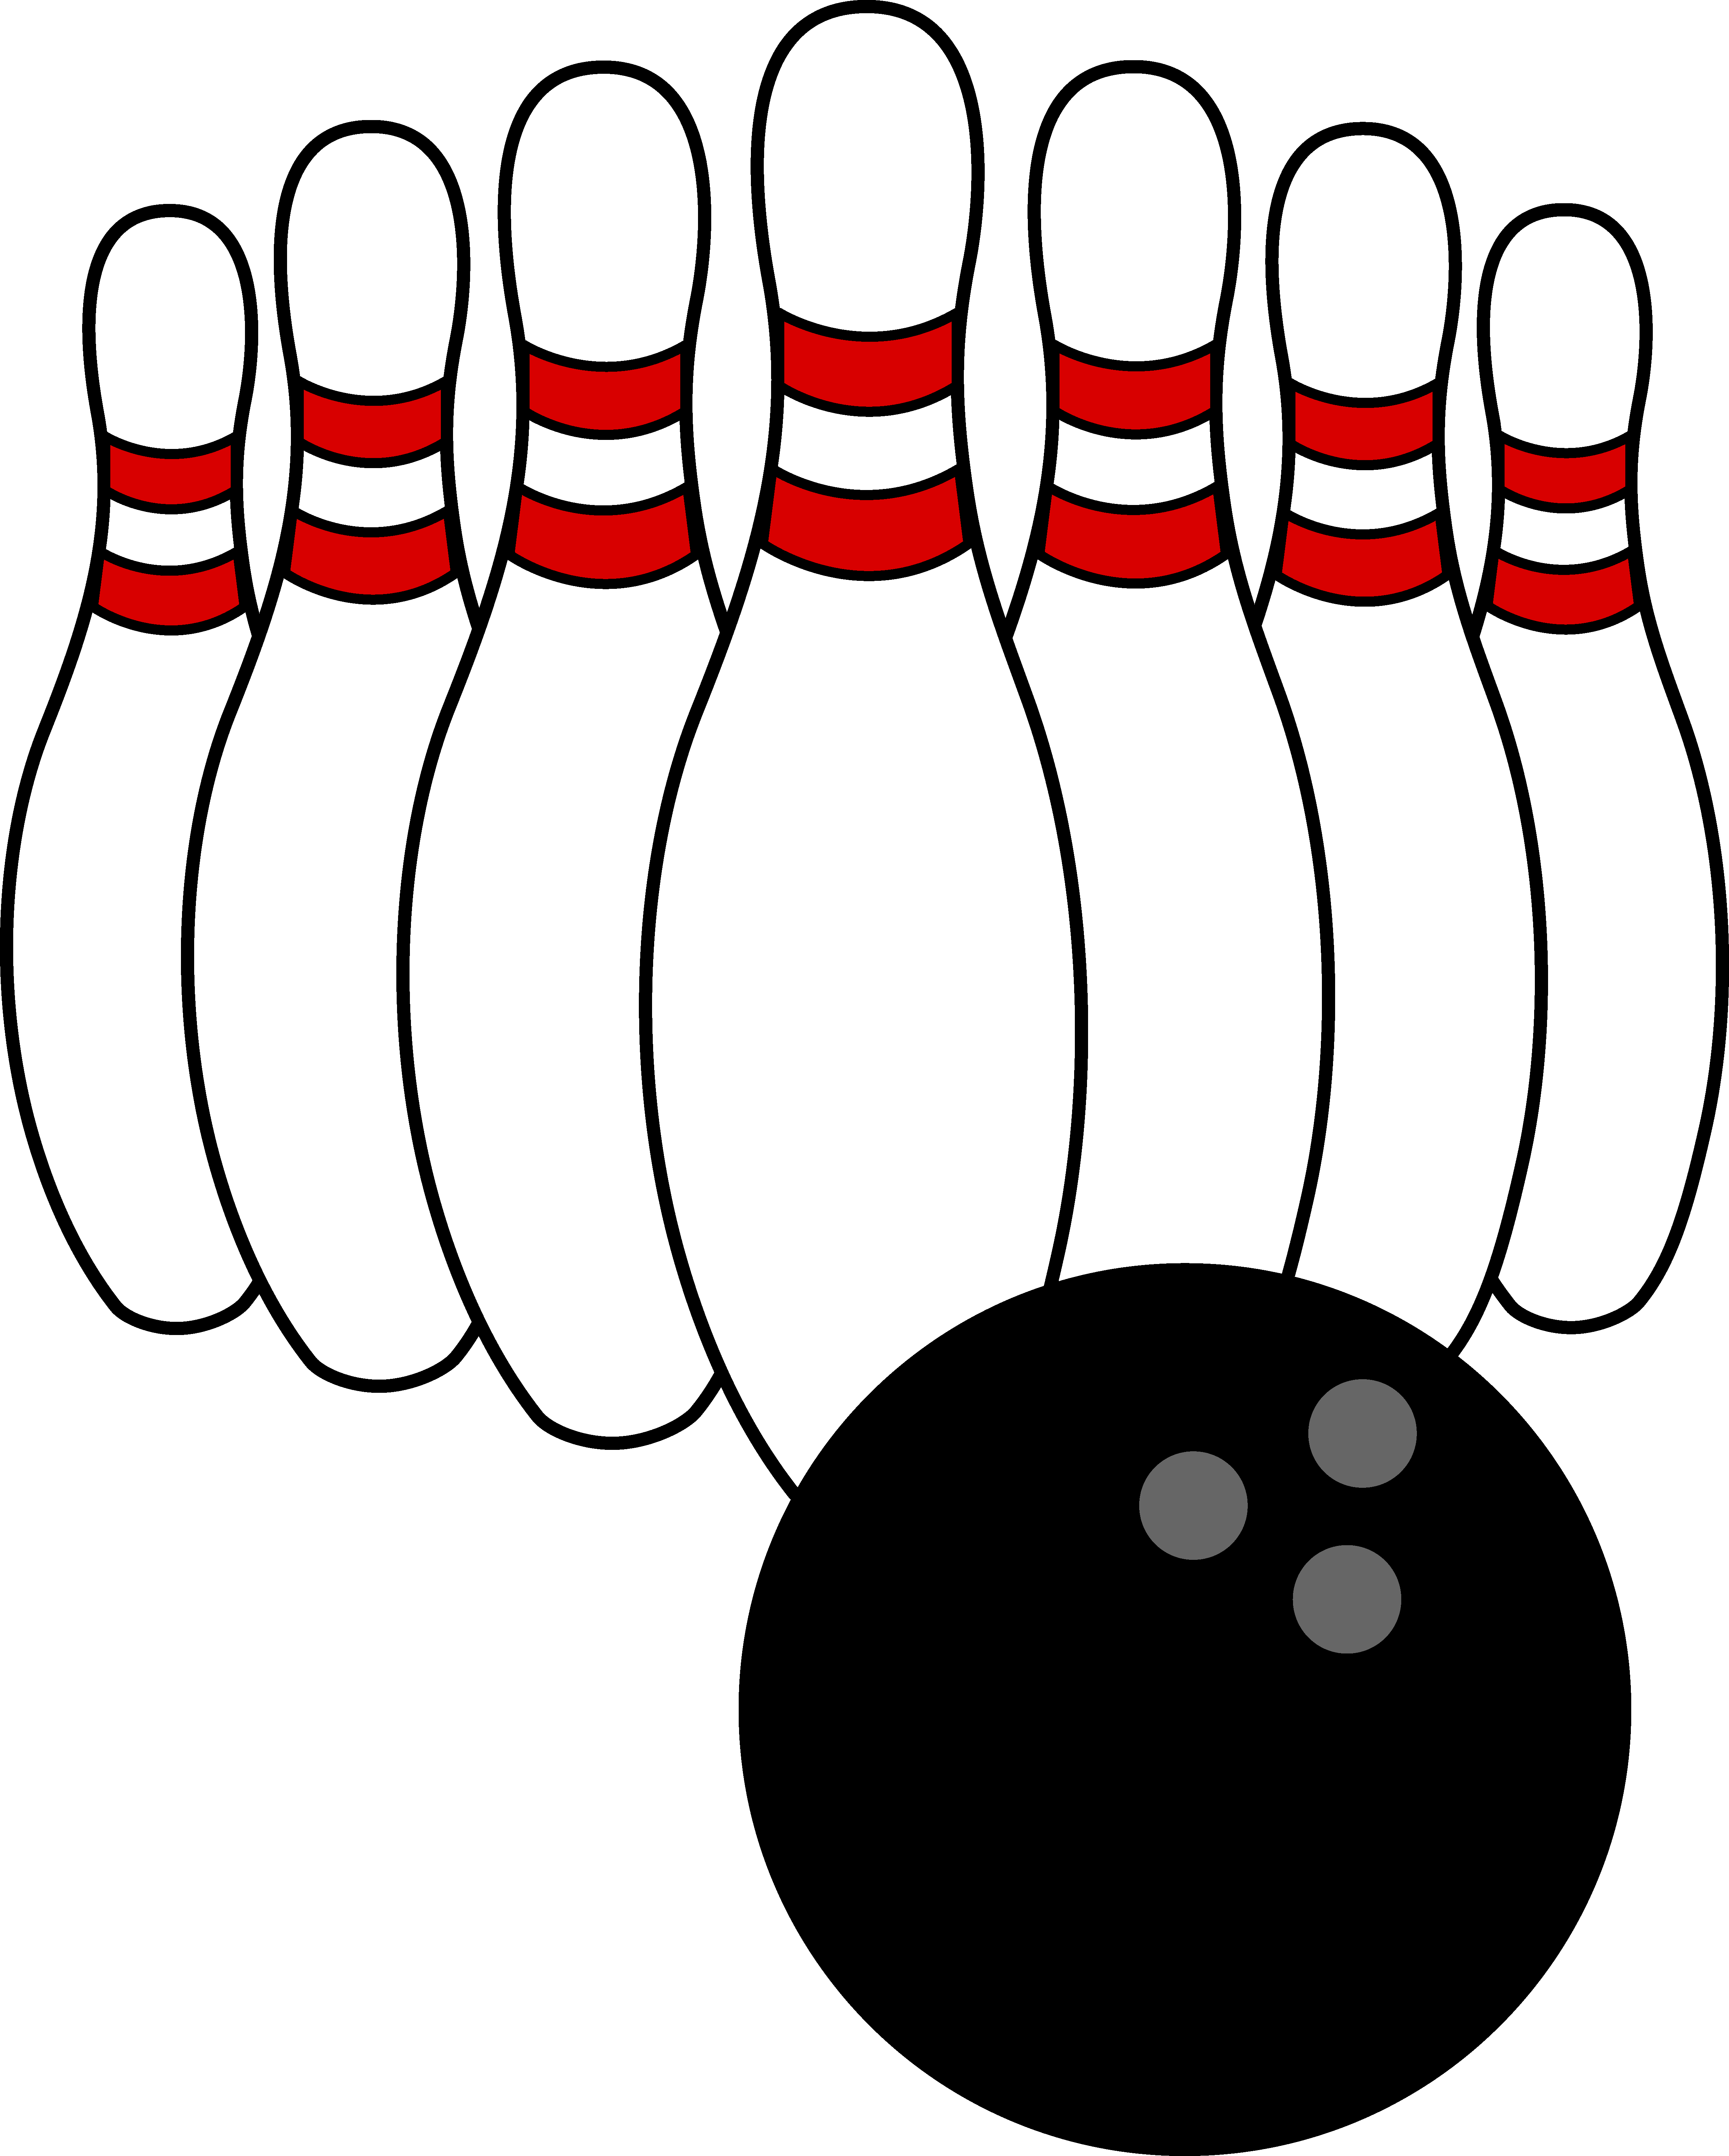 Winning clipart bowling Clipart pw HD Images Bowling